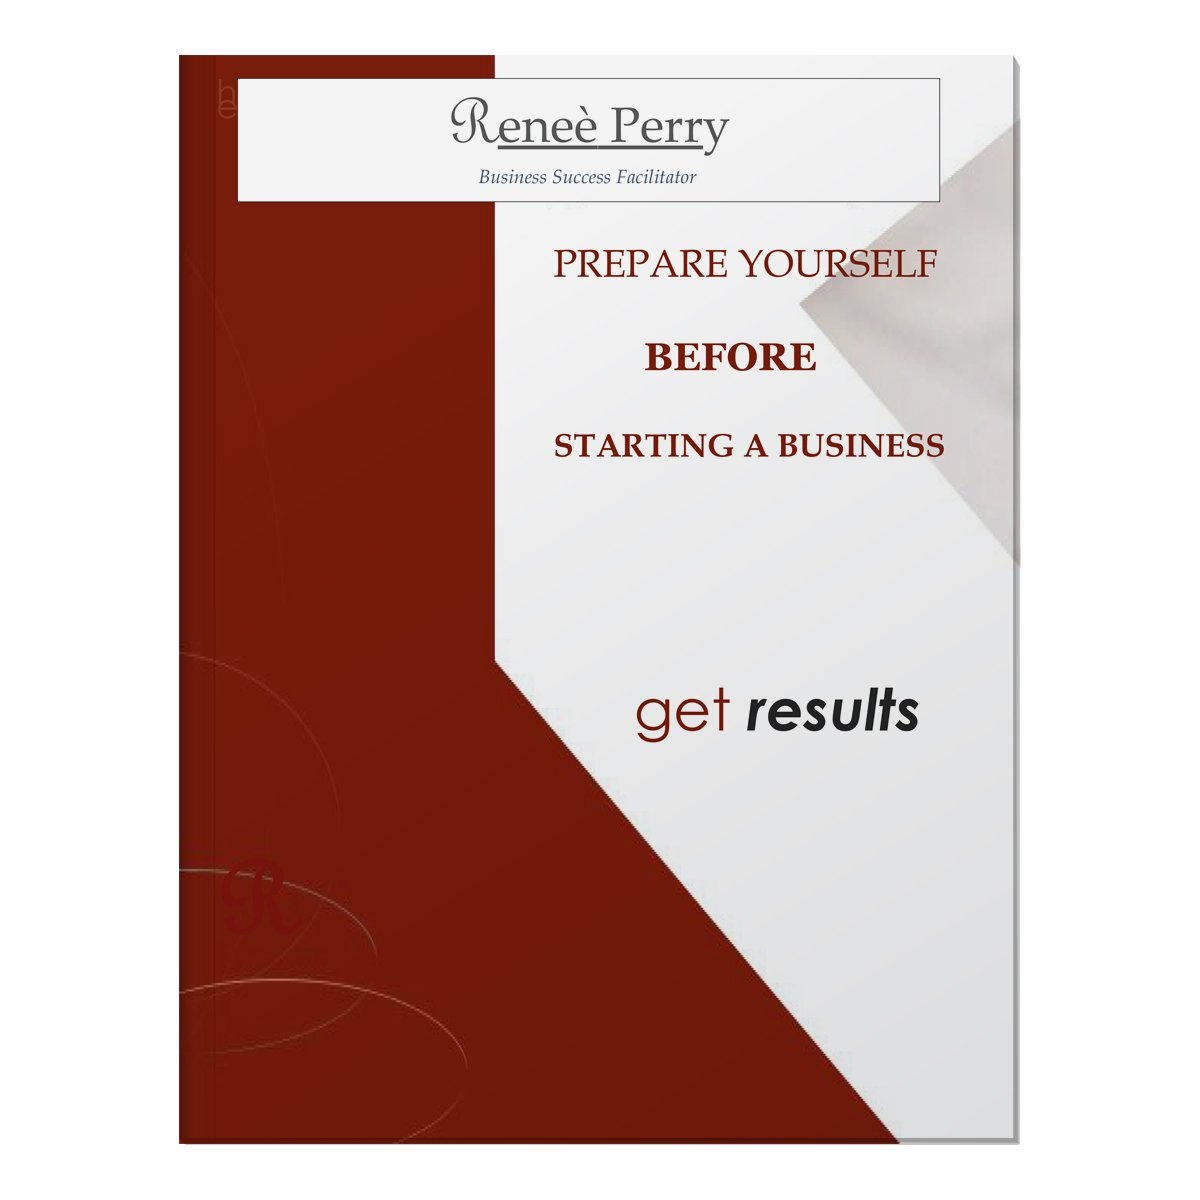 Prepare Yourself Before Starting a Business